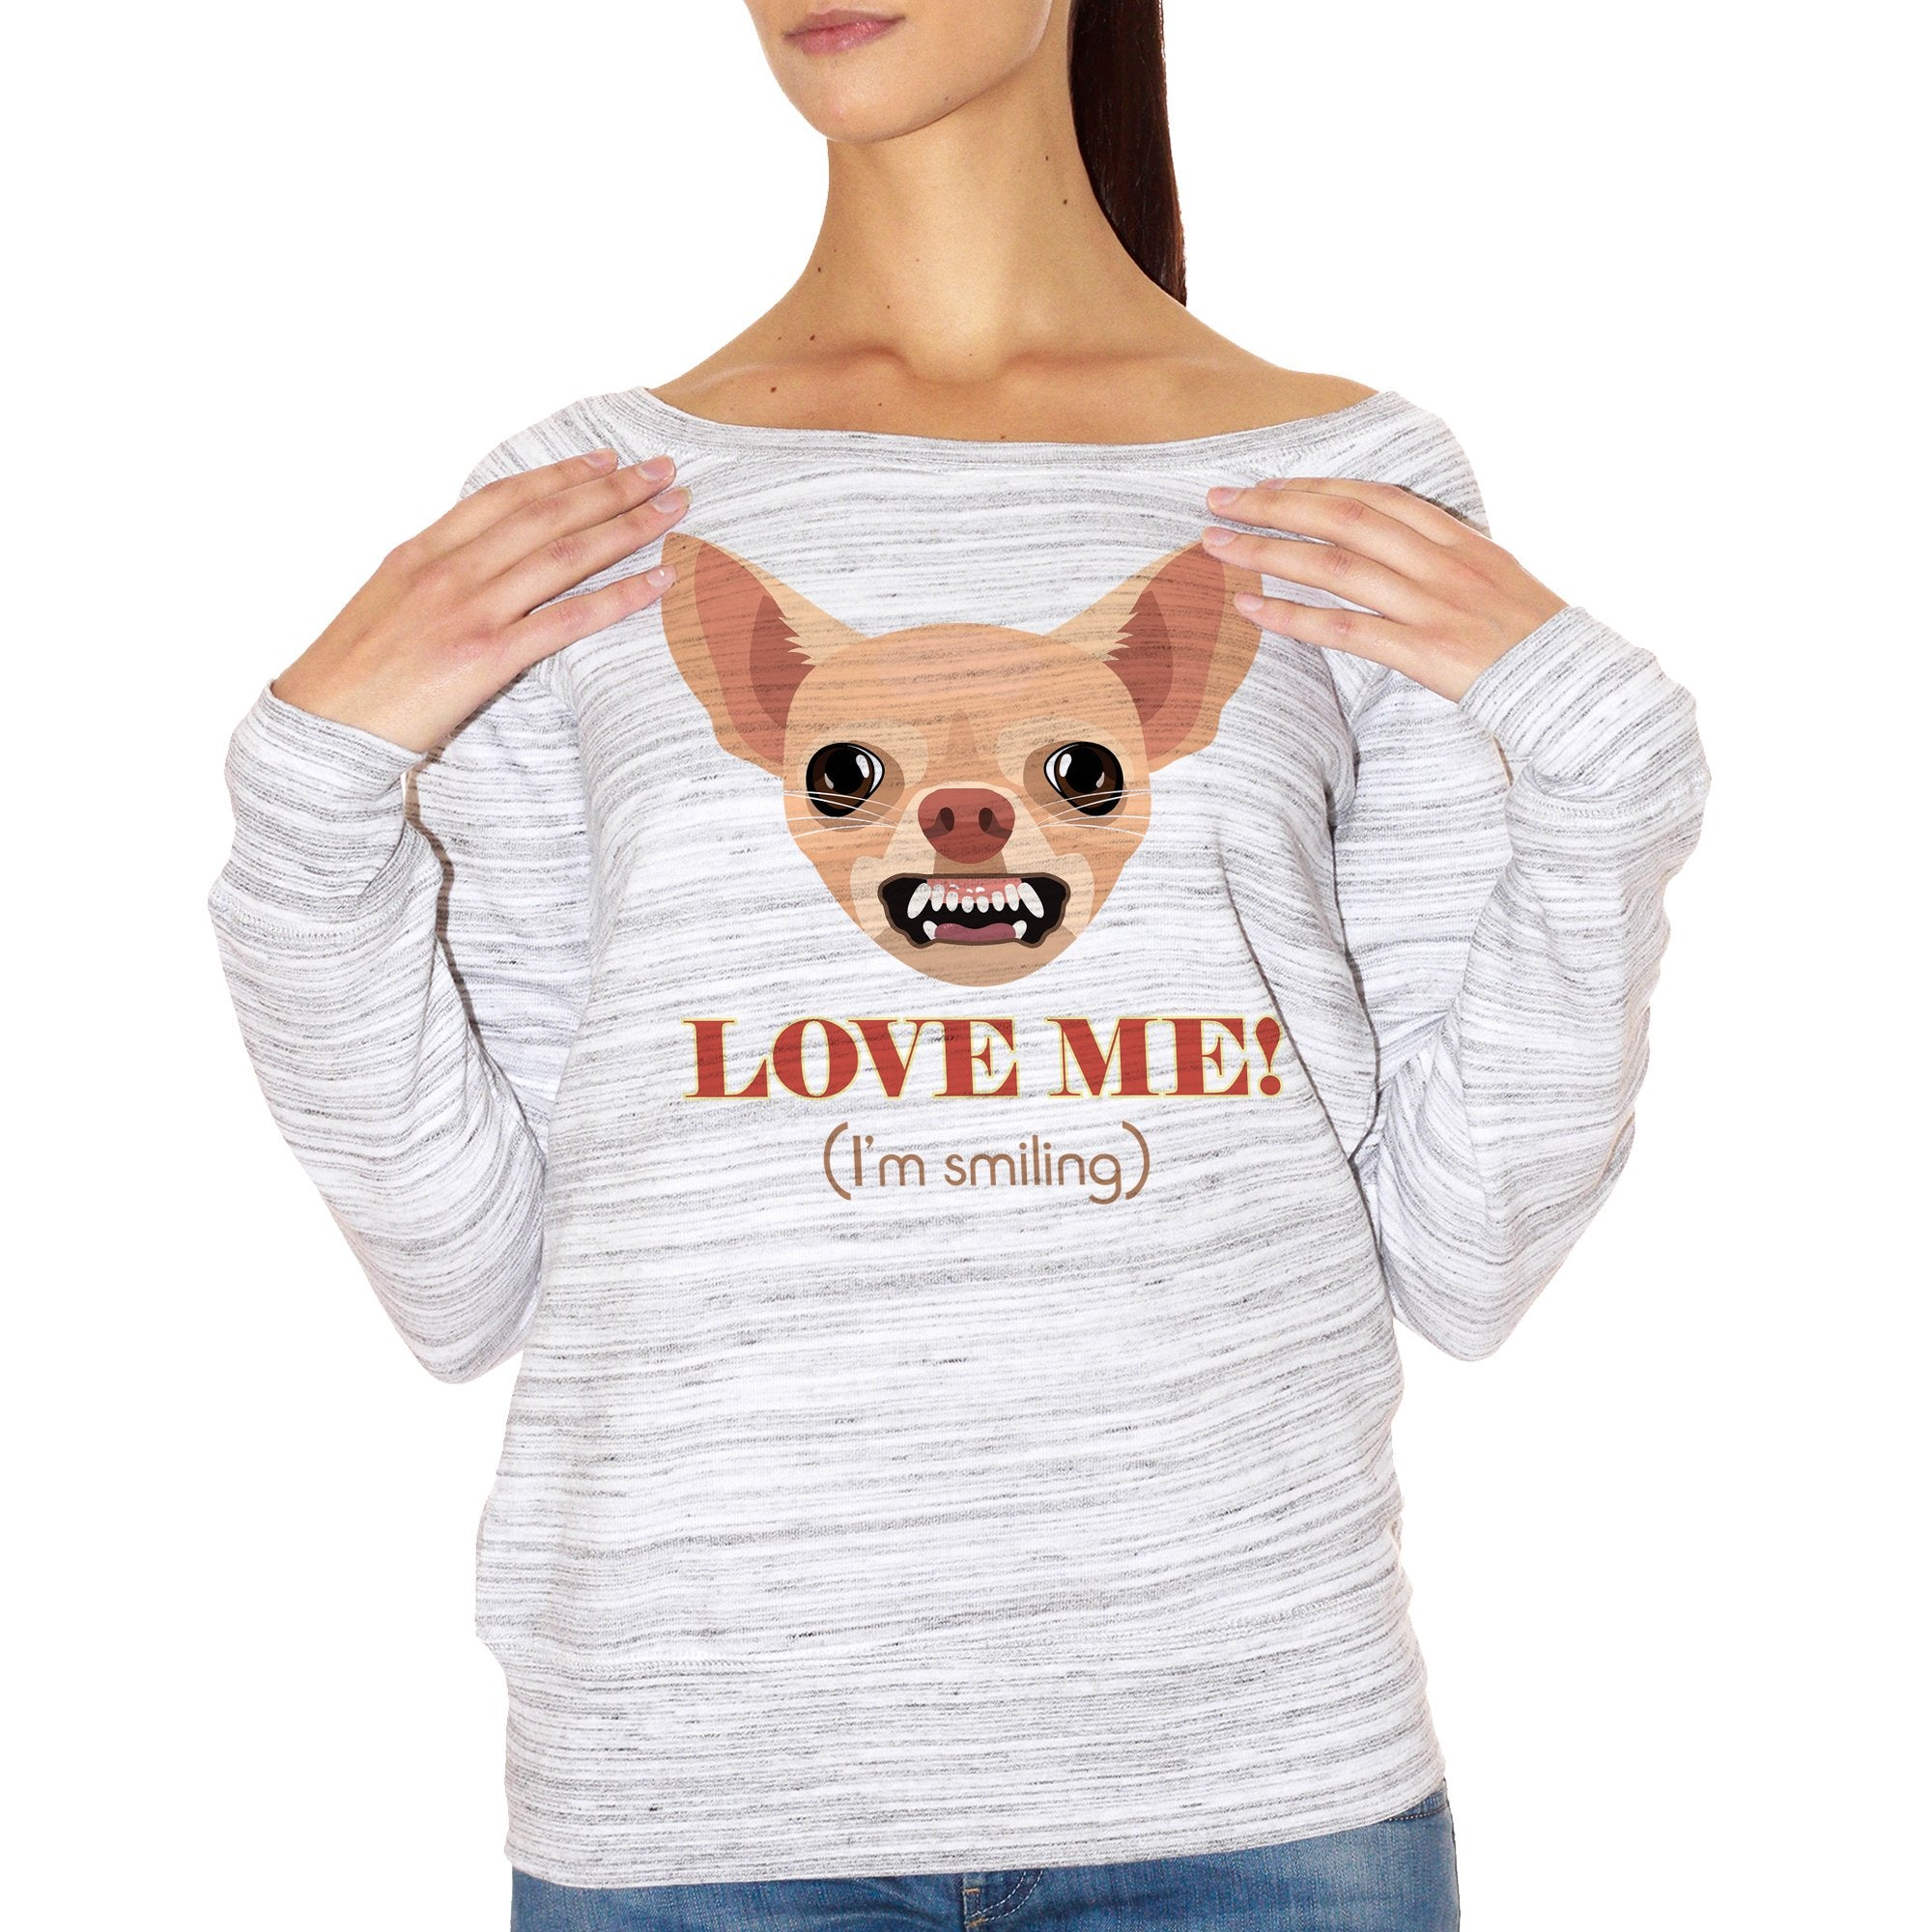 FELPA FASHION DONNA chihuahua-chiwawa-cane-dog-smile-pet-aninali-funny